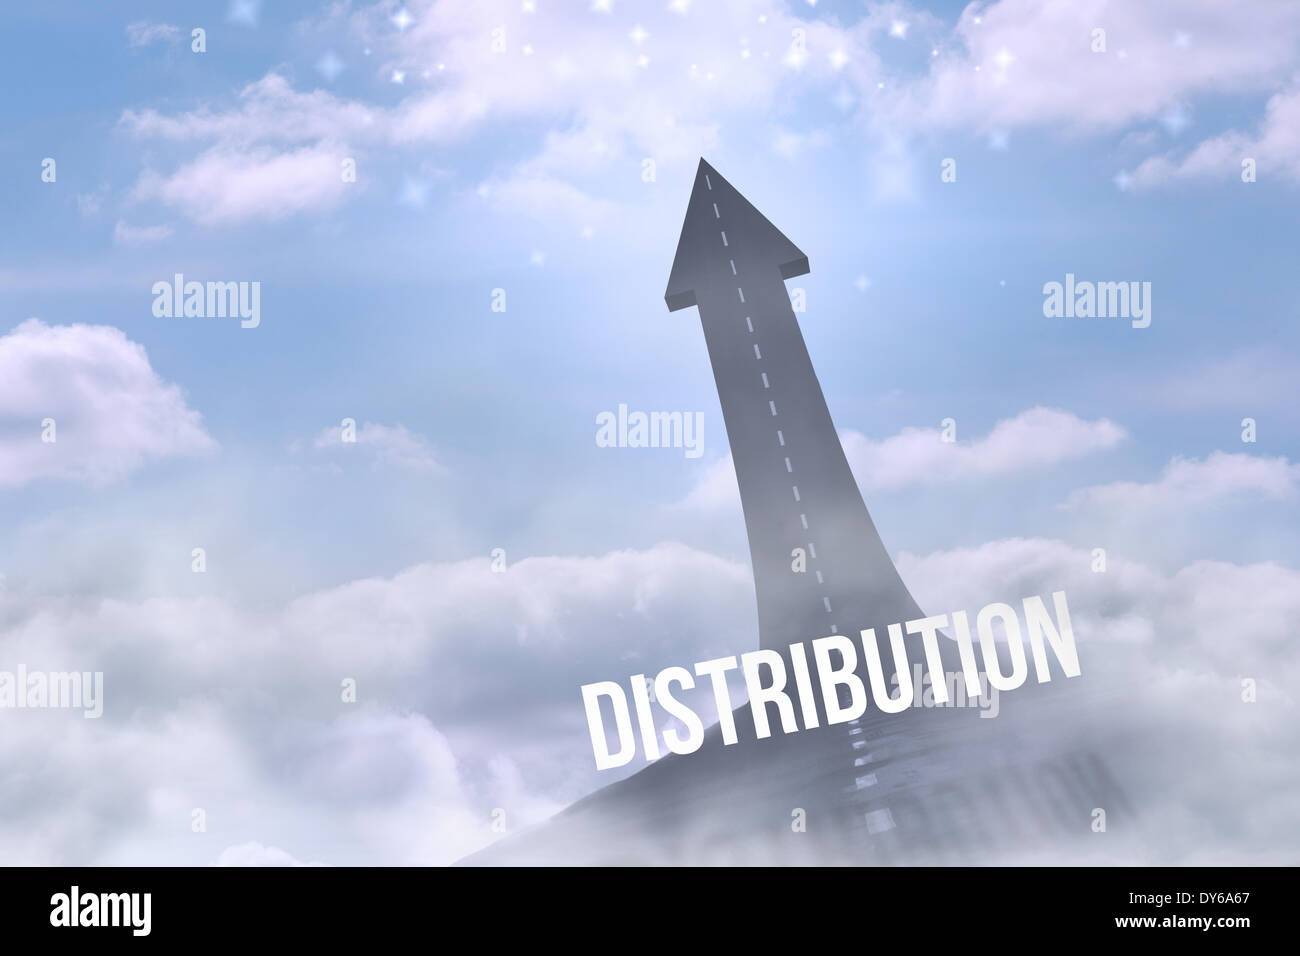 Distribution against road turning into arrow - Stock Image